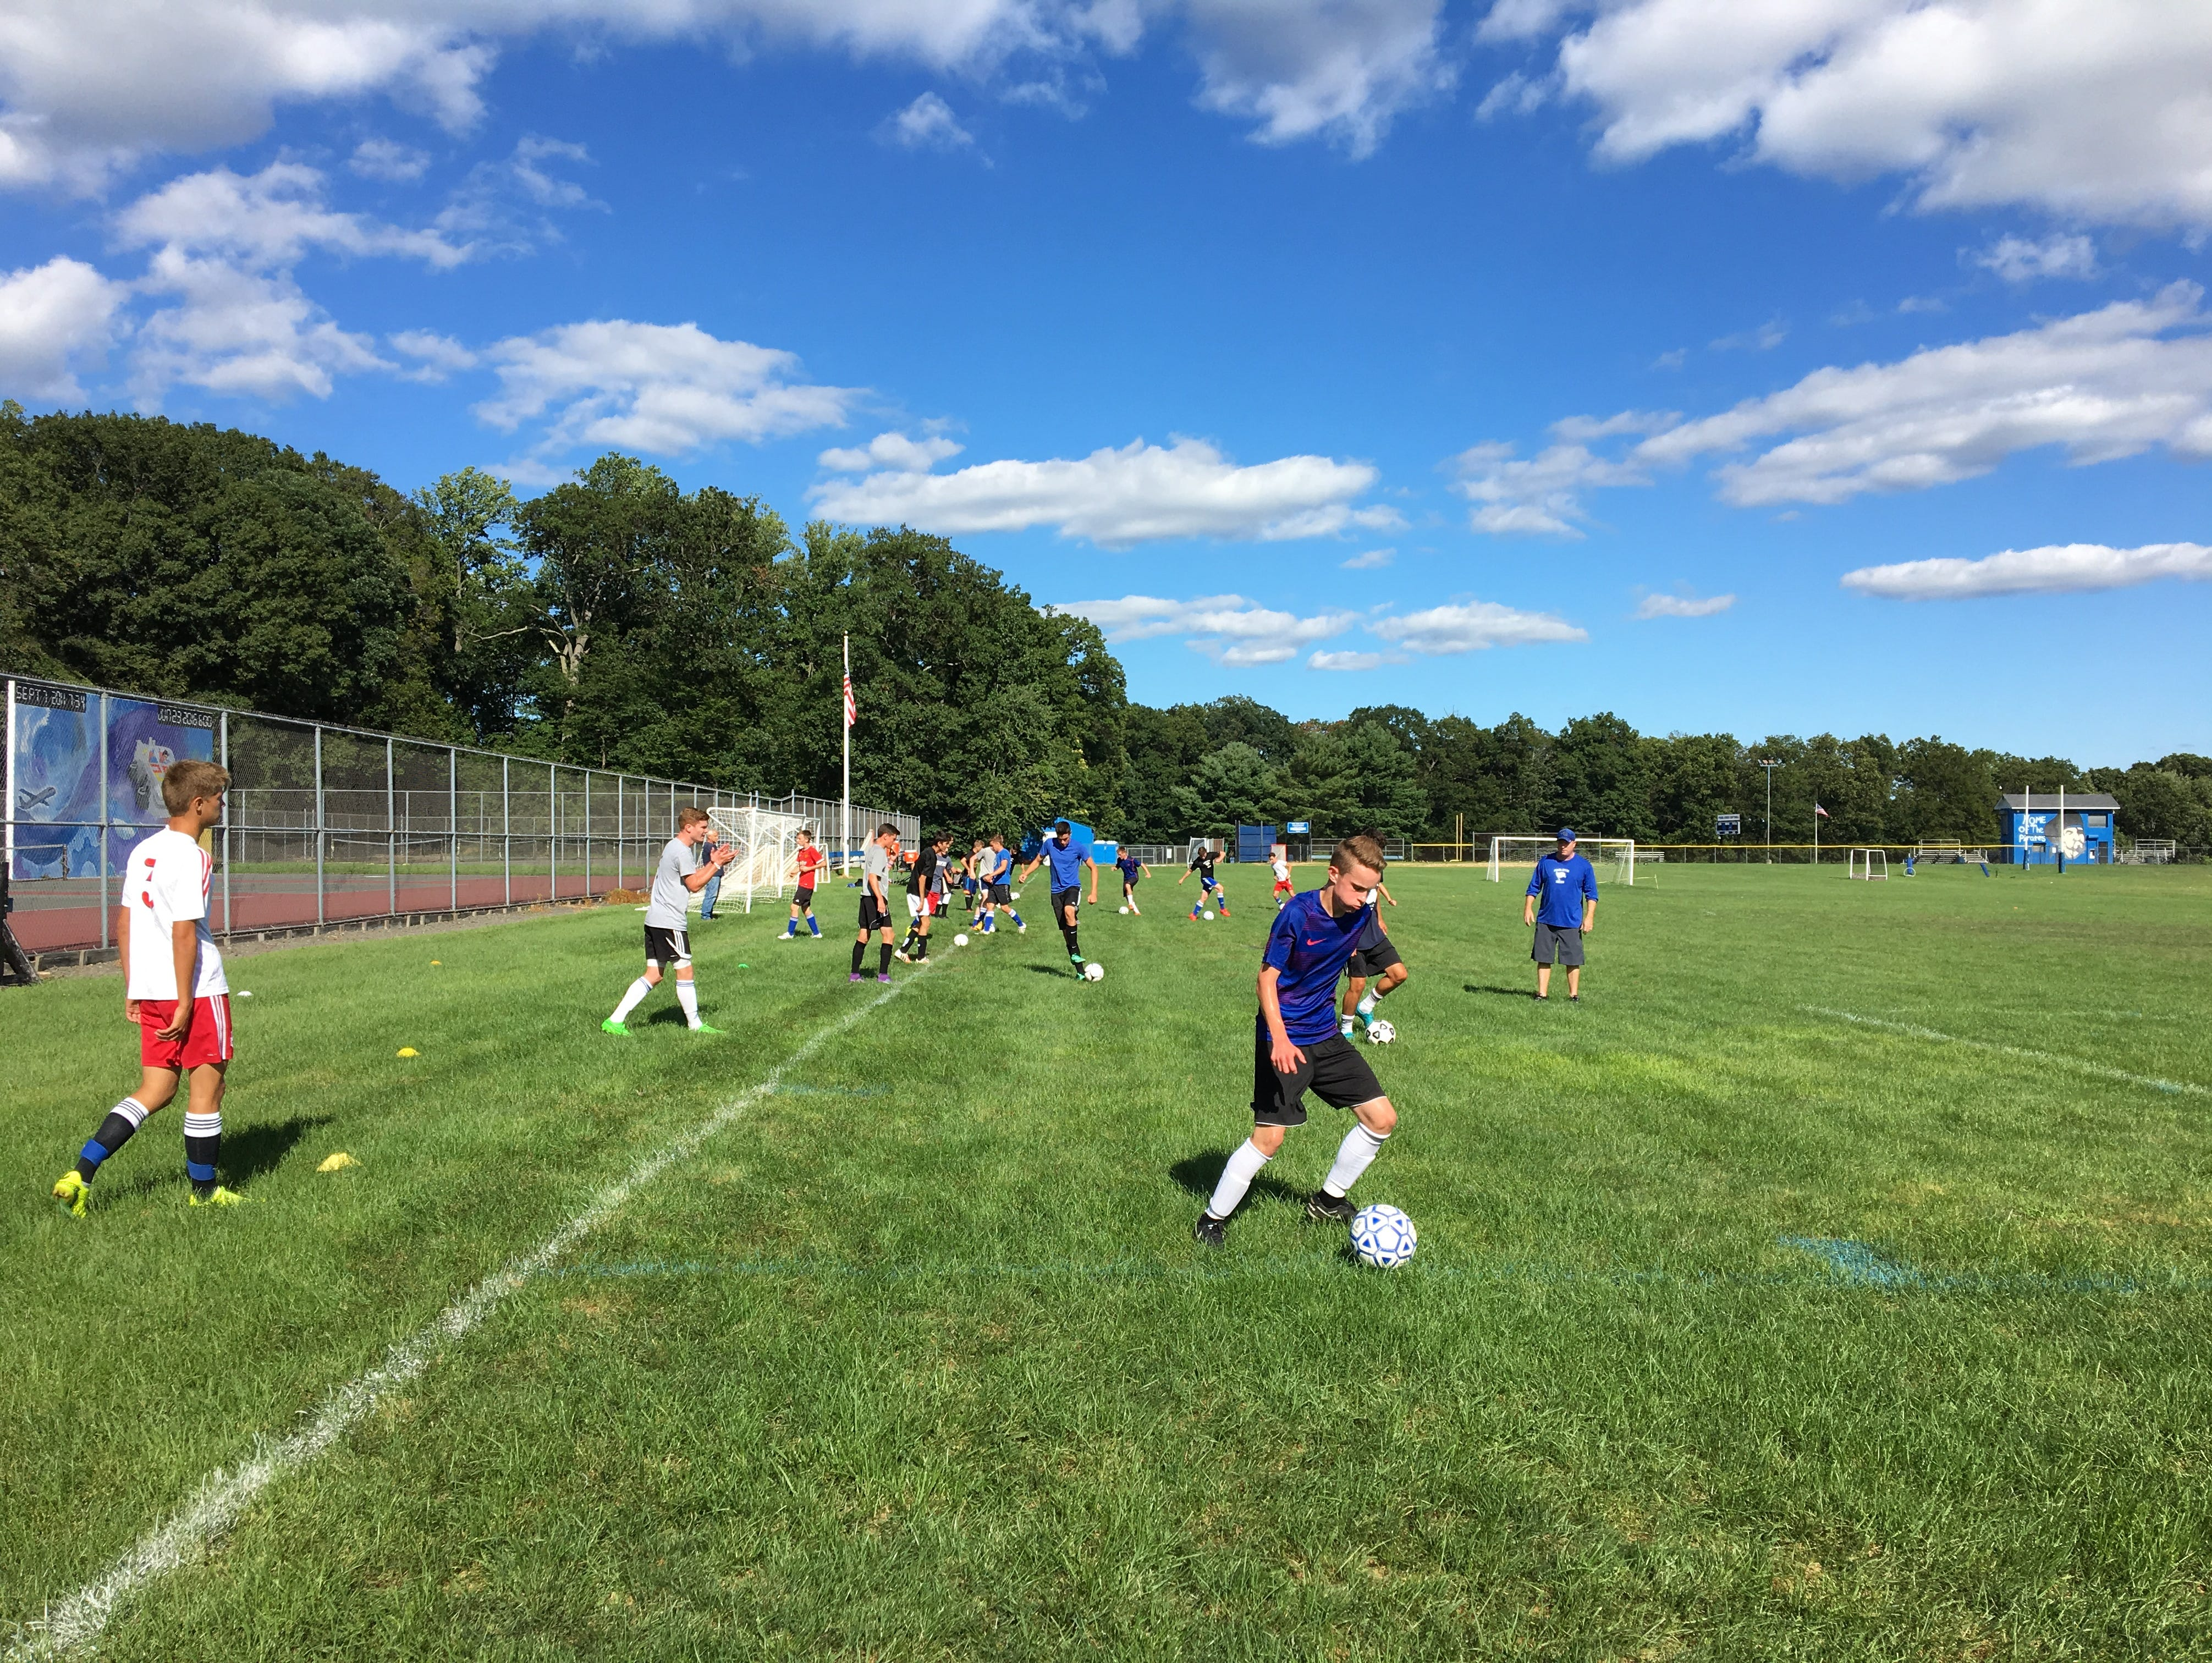 The Pearl River boys soccer team practices on Monday, Aug. 22, 2016.